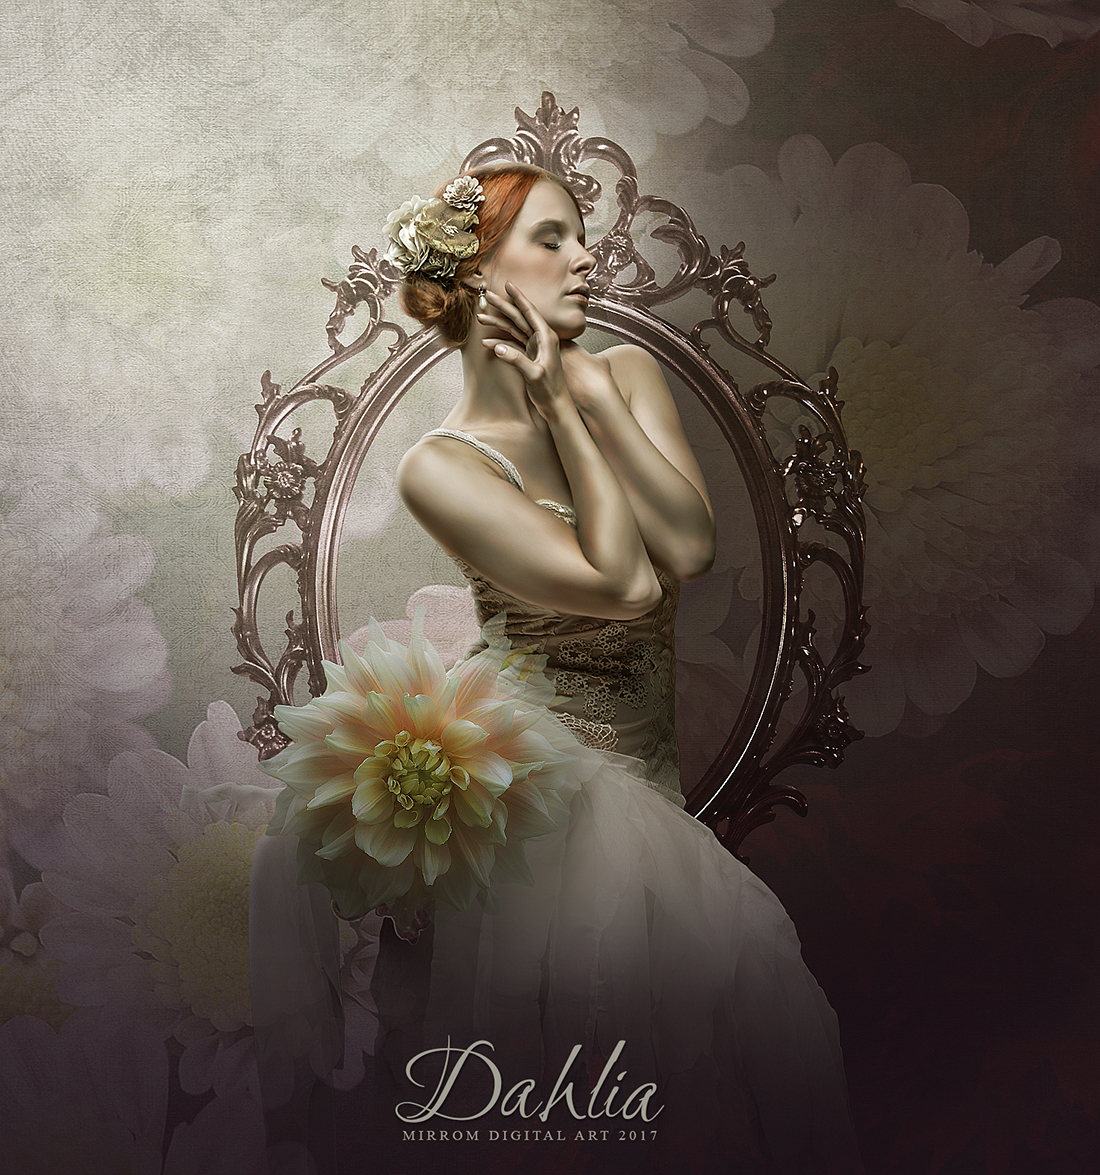 Create a Dahlia Digital Art Photo Manipulation Tutorial